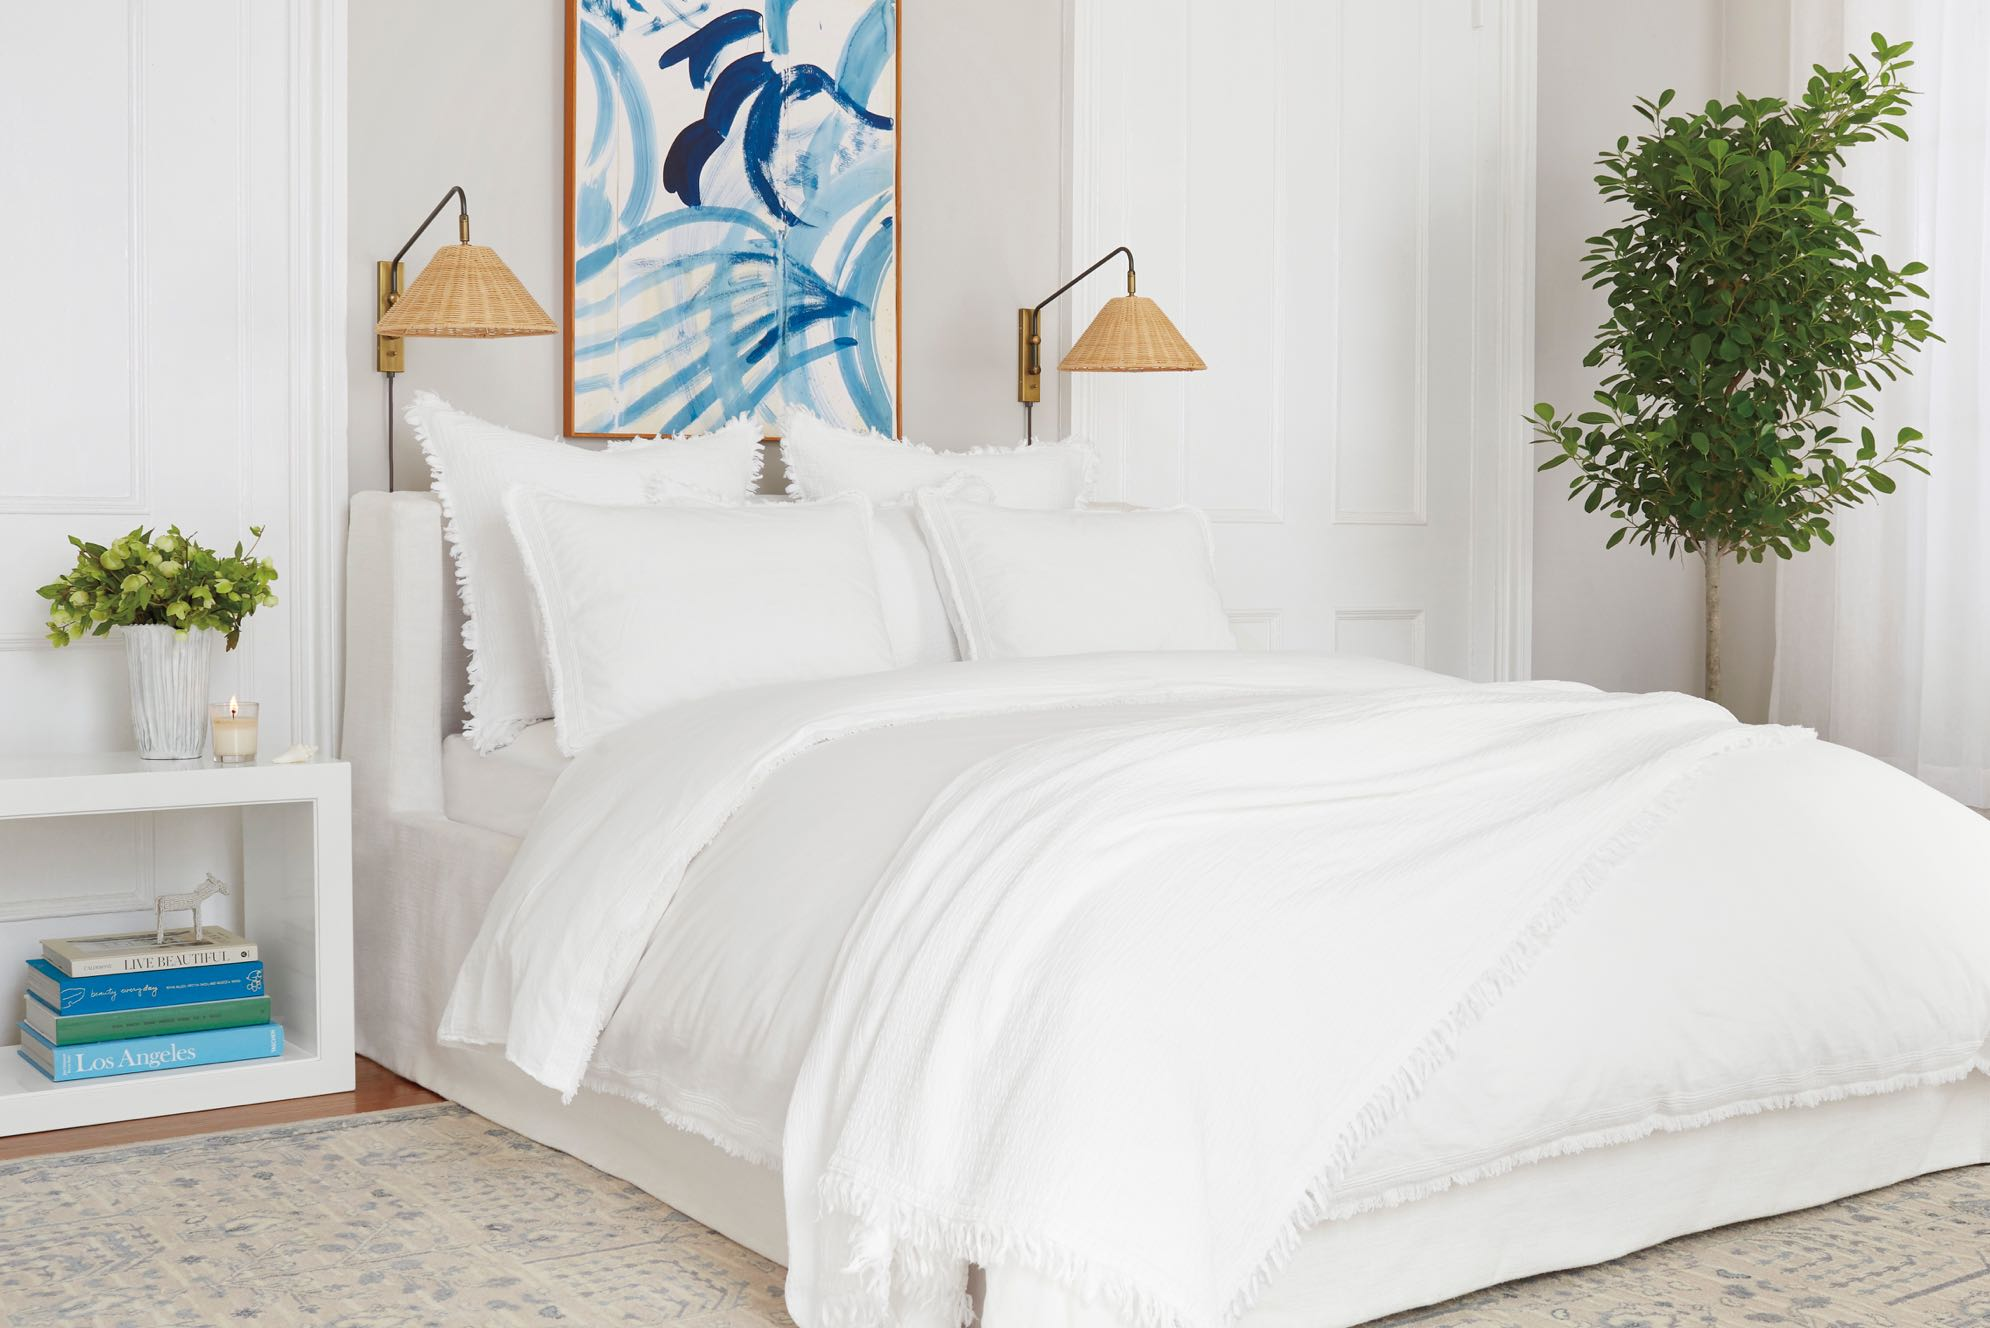 The All White Bed